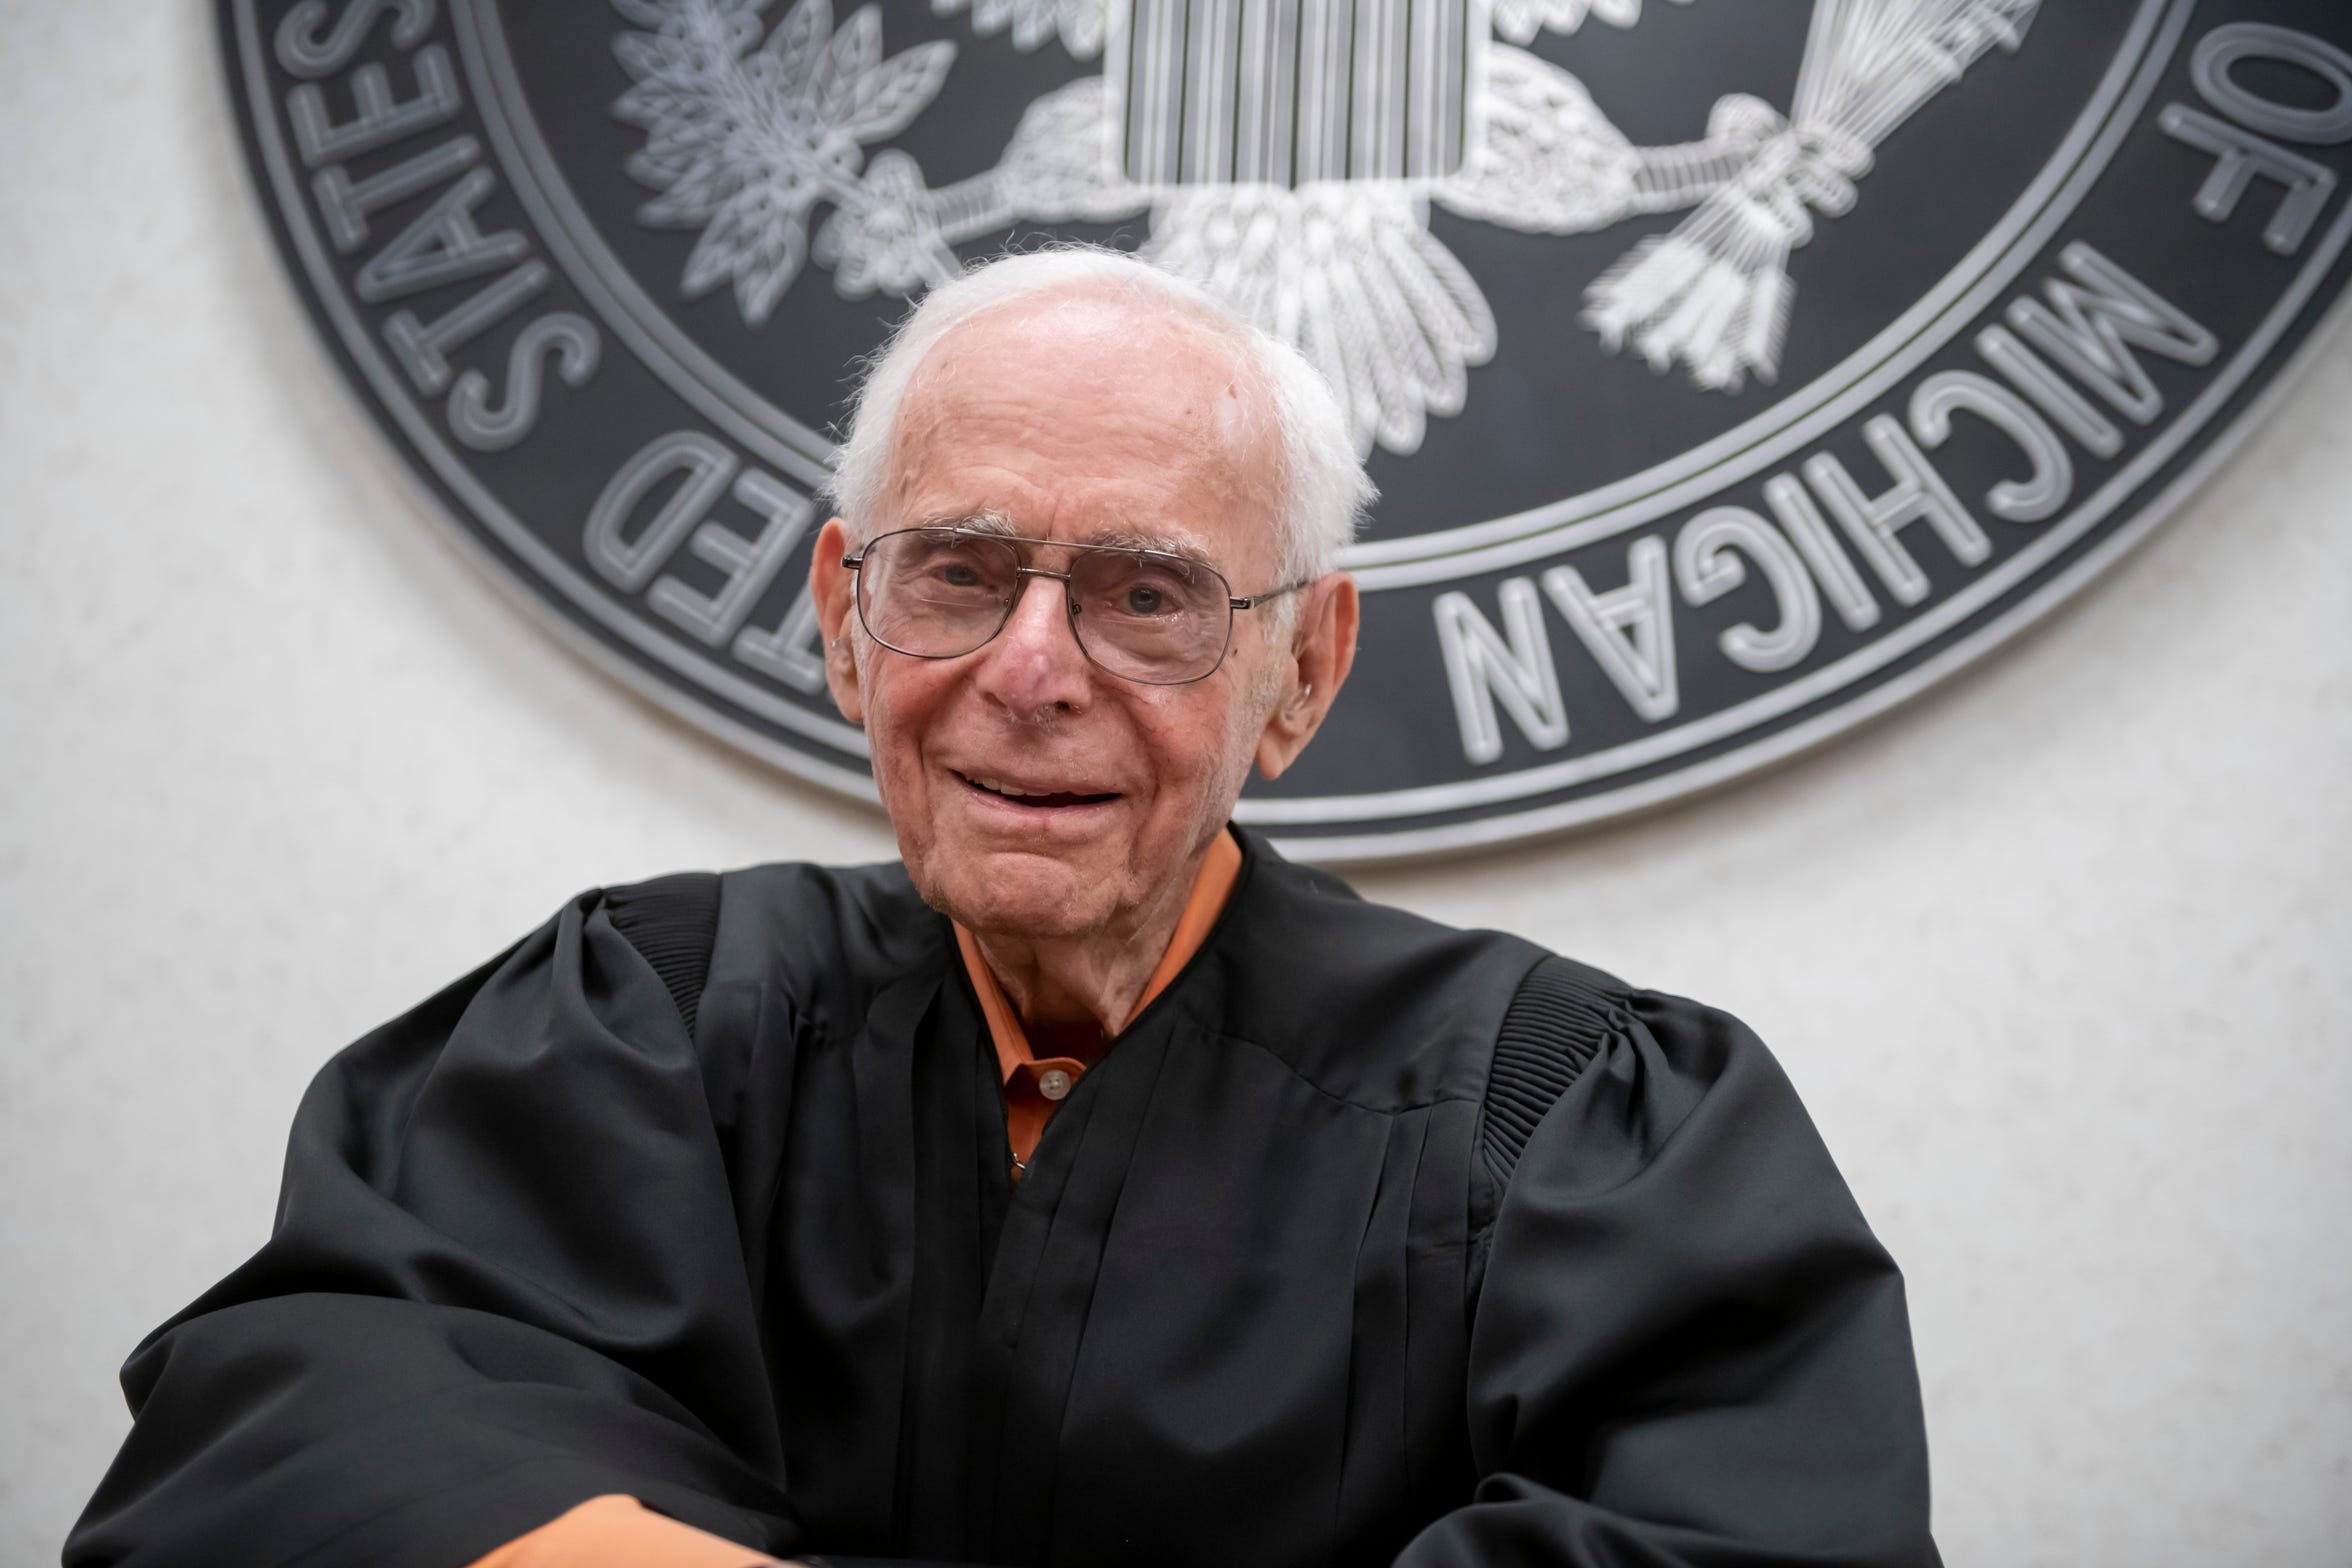 Avern Cohn, Senior United States District Judge of the United States District Court for the Eastern District of Michigan, talks in his courtroom at the Theodore Levin United States Courthouse.